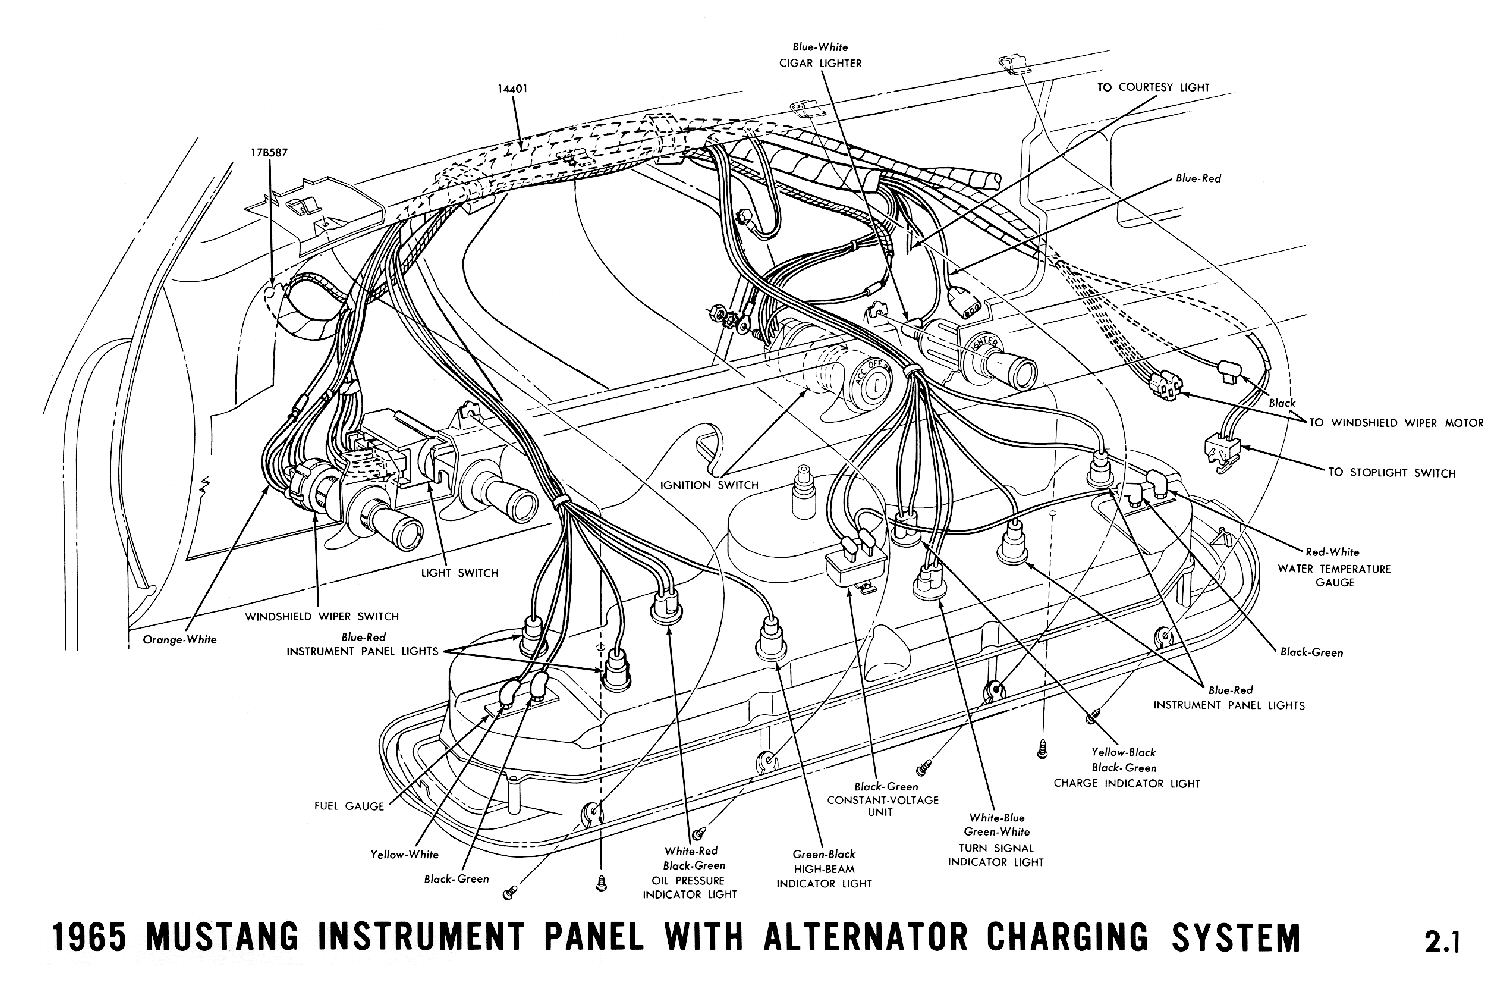 temp wiring diagram 65 chevelle simple wiring diagram site 1965 chevy chevelle wiring diagram 65 mustang headlight wire diagram easy wiring diagrams 1964 corvette wiring diagram temp wiring diagram 65 chevelle